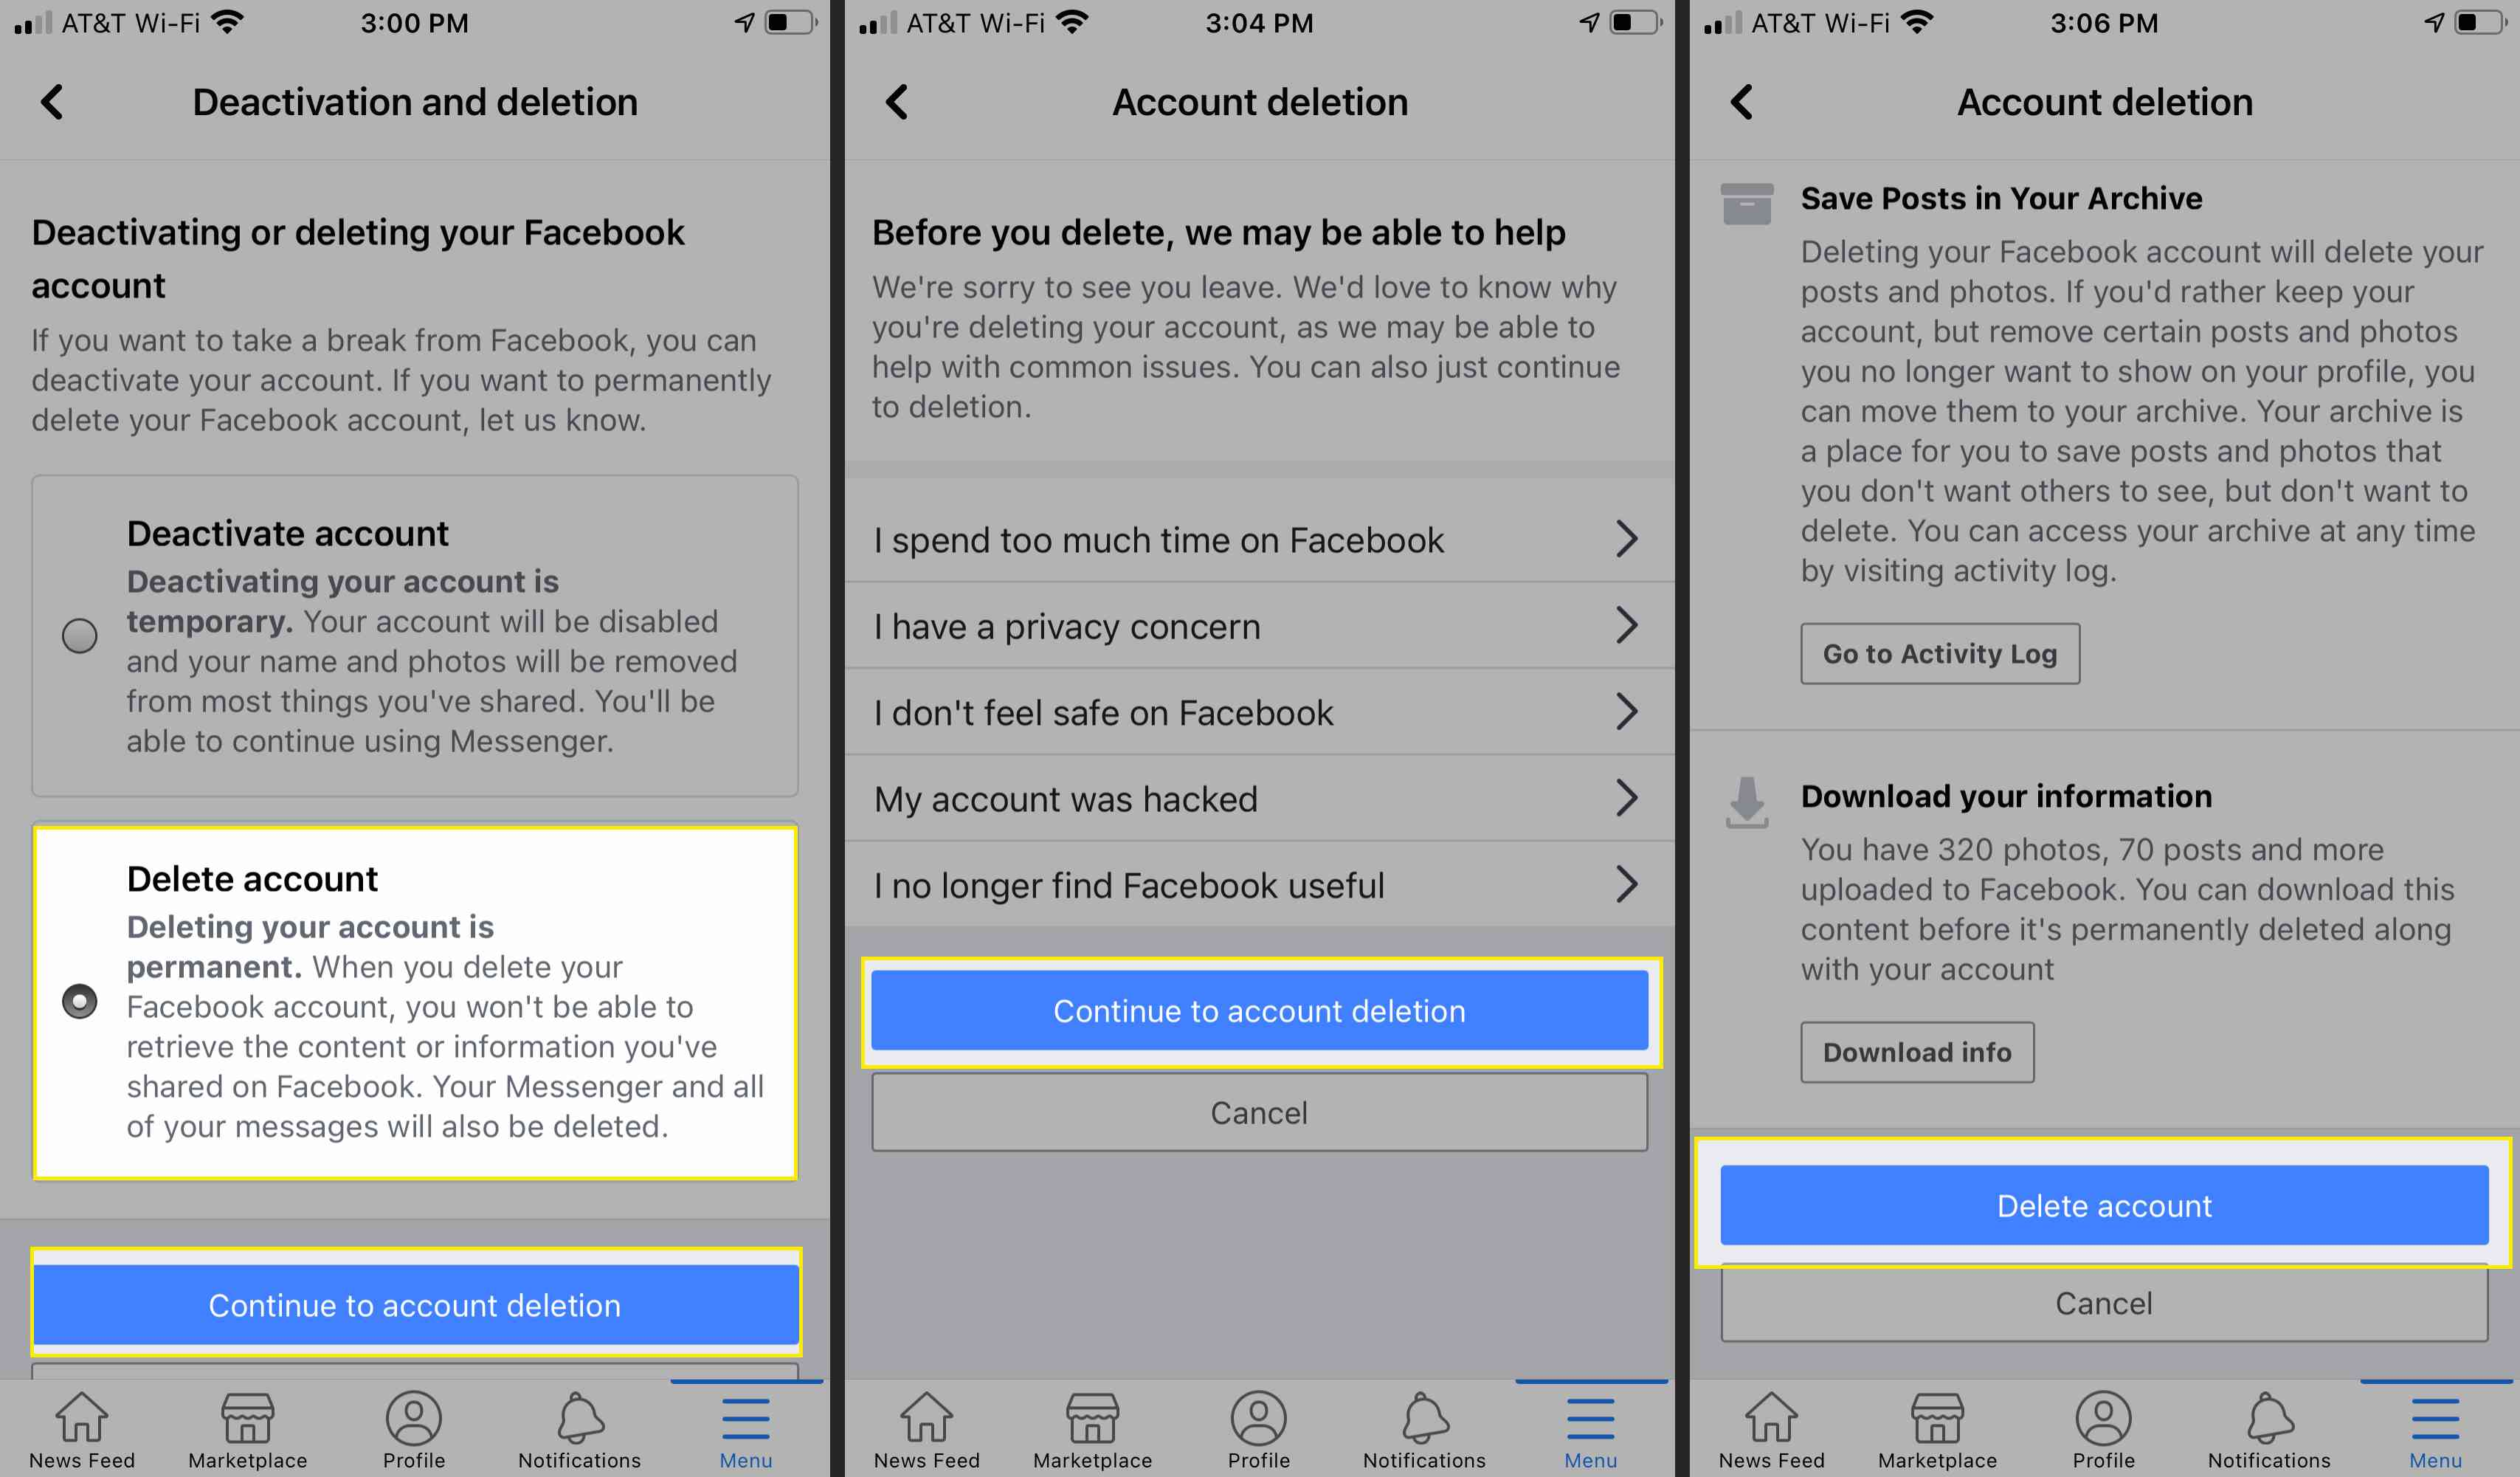 Facebook account settings with Delete Account, Continue to Account Deletions, and Delete account highlighted